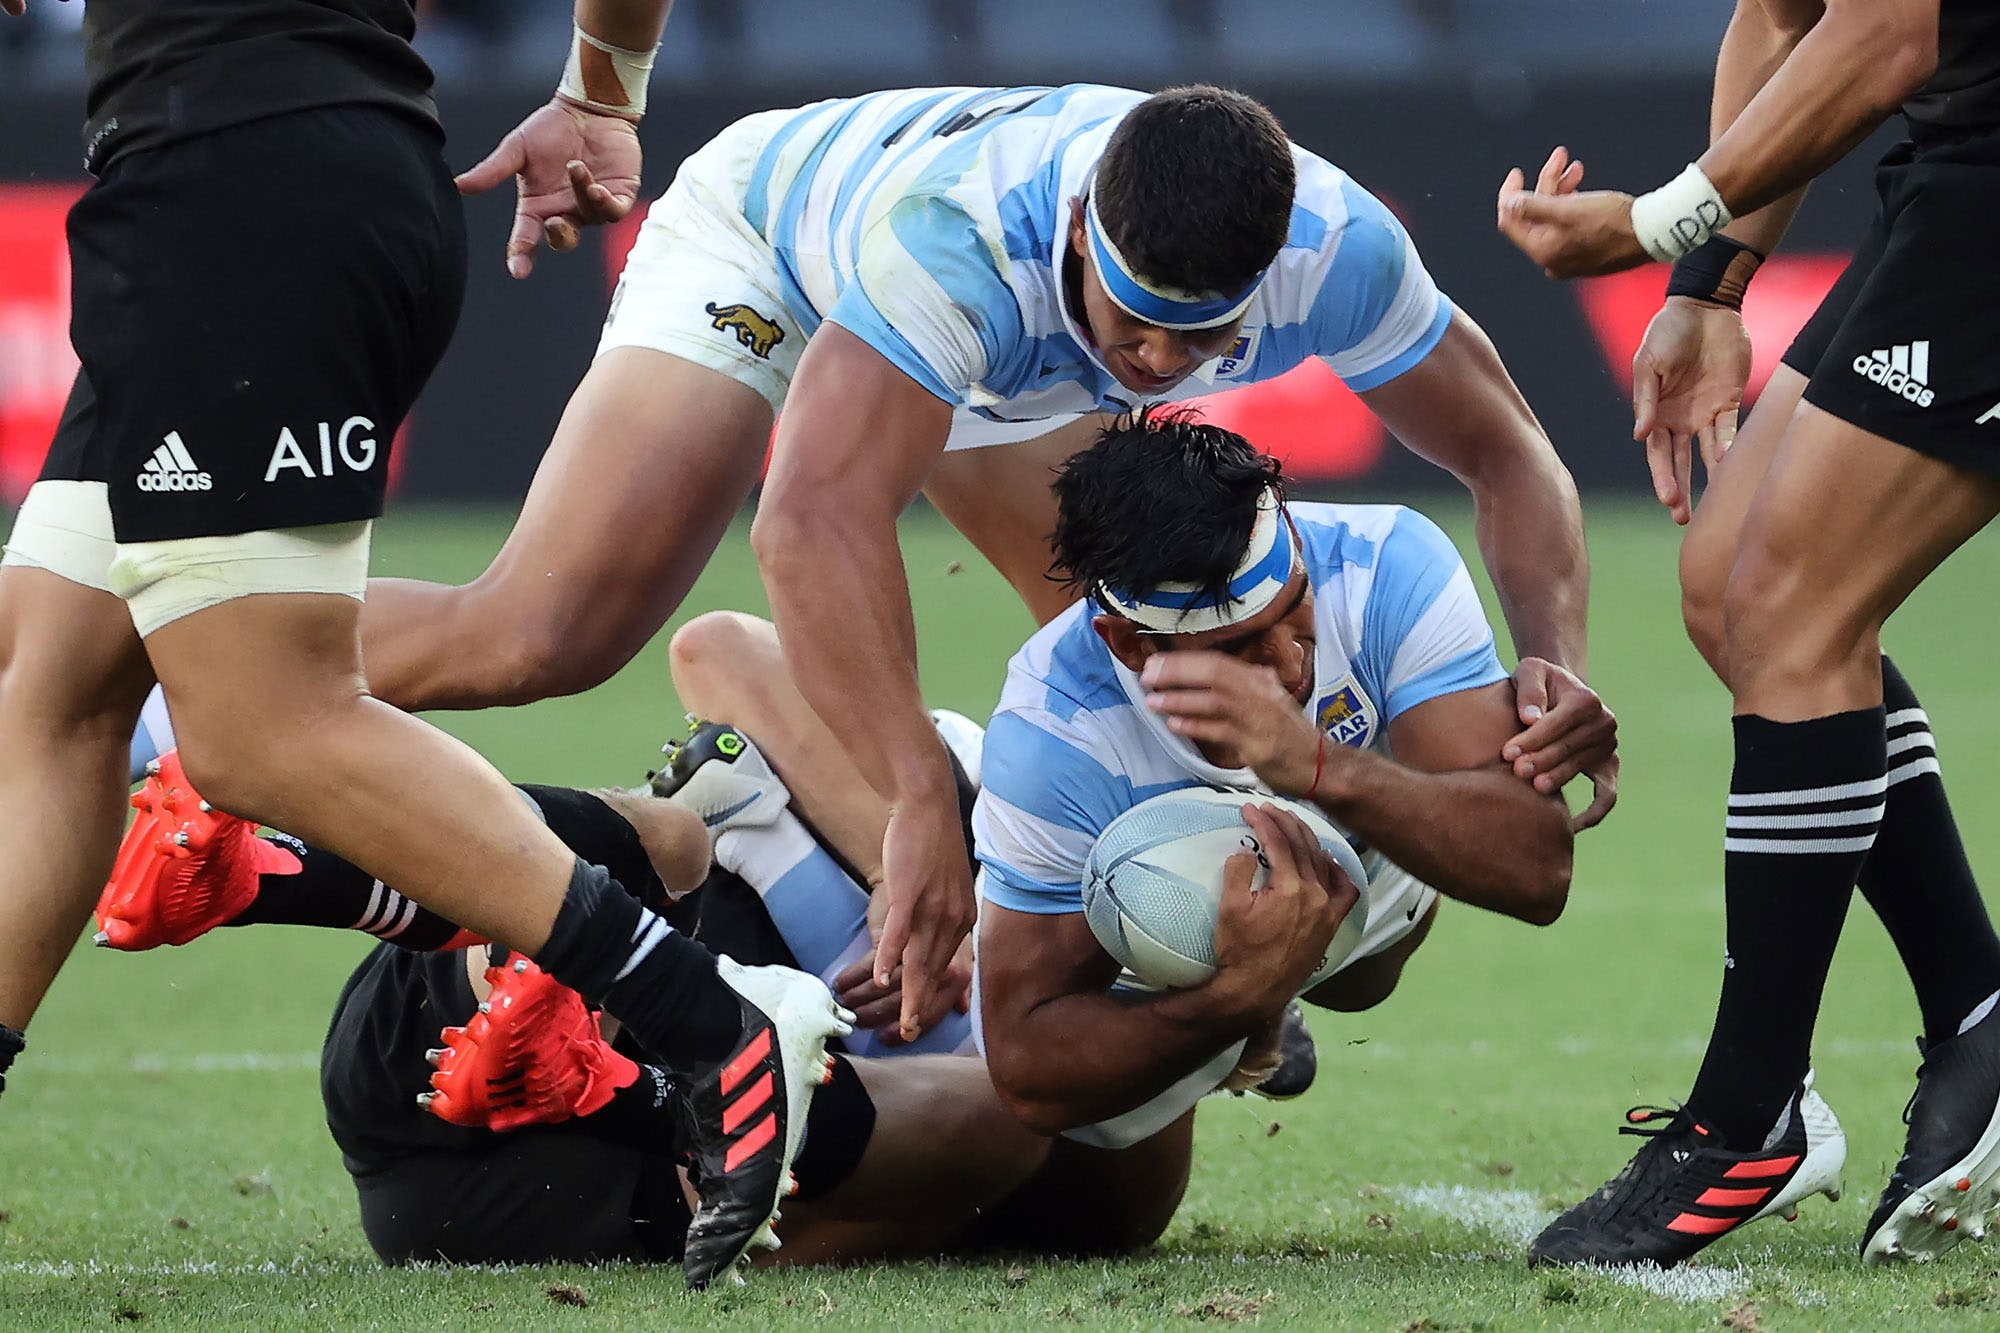 ¡Histórico! Los Pumas se impusieron con autoridad a los All Blacks en el Tri-Nations: 25-15